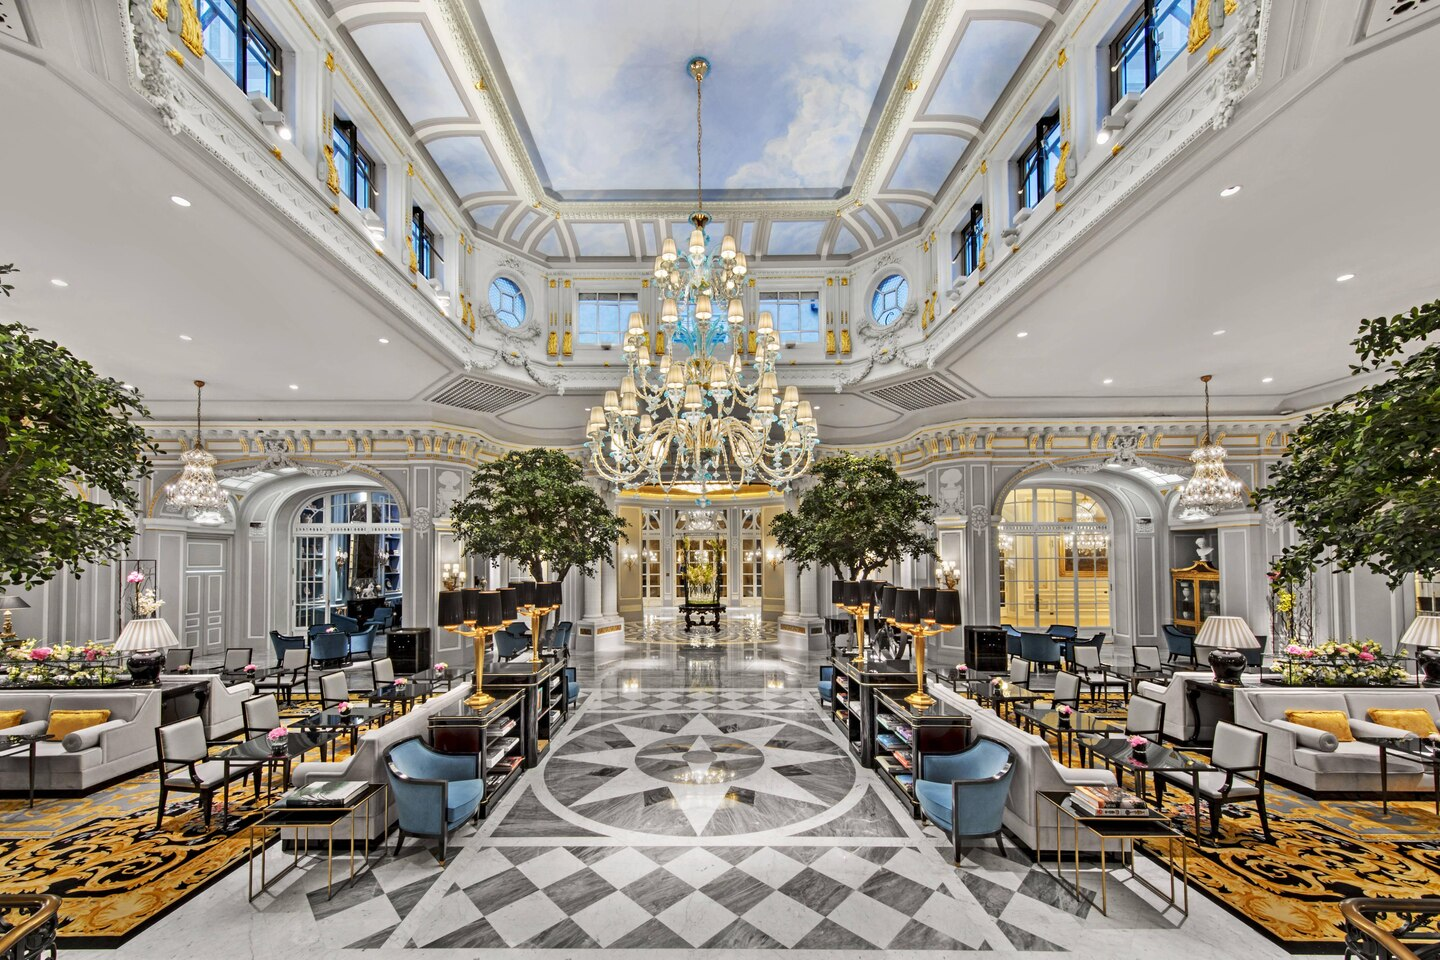 hotel design hotel design Hotel design: Luxurious hotels that will inspire you sT rEGIS ROME PIERRE YVES ROCHON 1